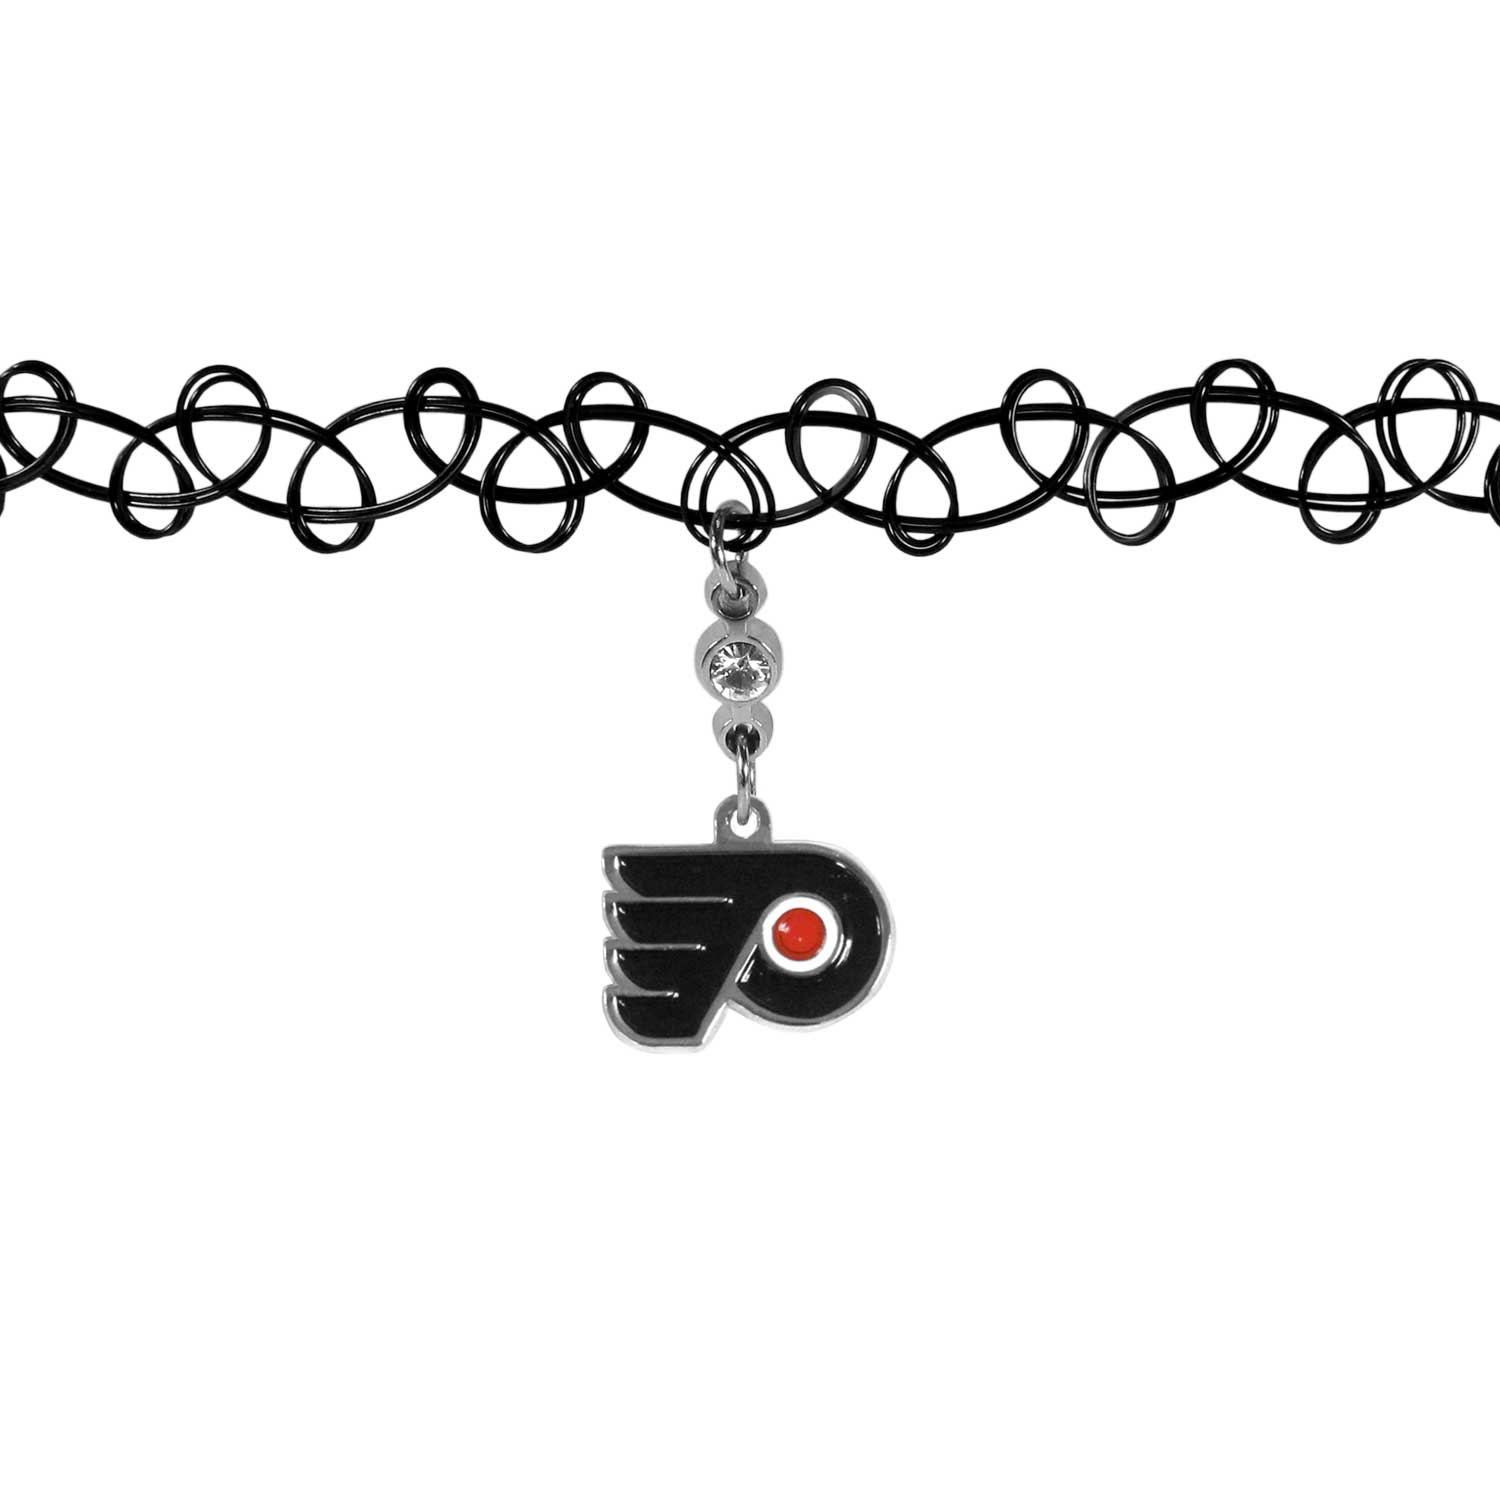 Philadelphia Flyers® Knotted Choker - This retro, knotted choker is a cool and unique piece of fan jewelry. The tattoo style choker features a high polish Philadelphia Flyers® charm with rhinestone accents.